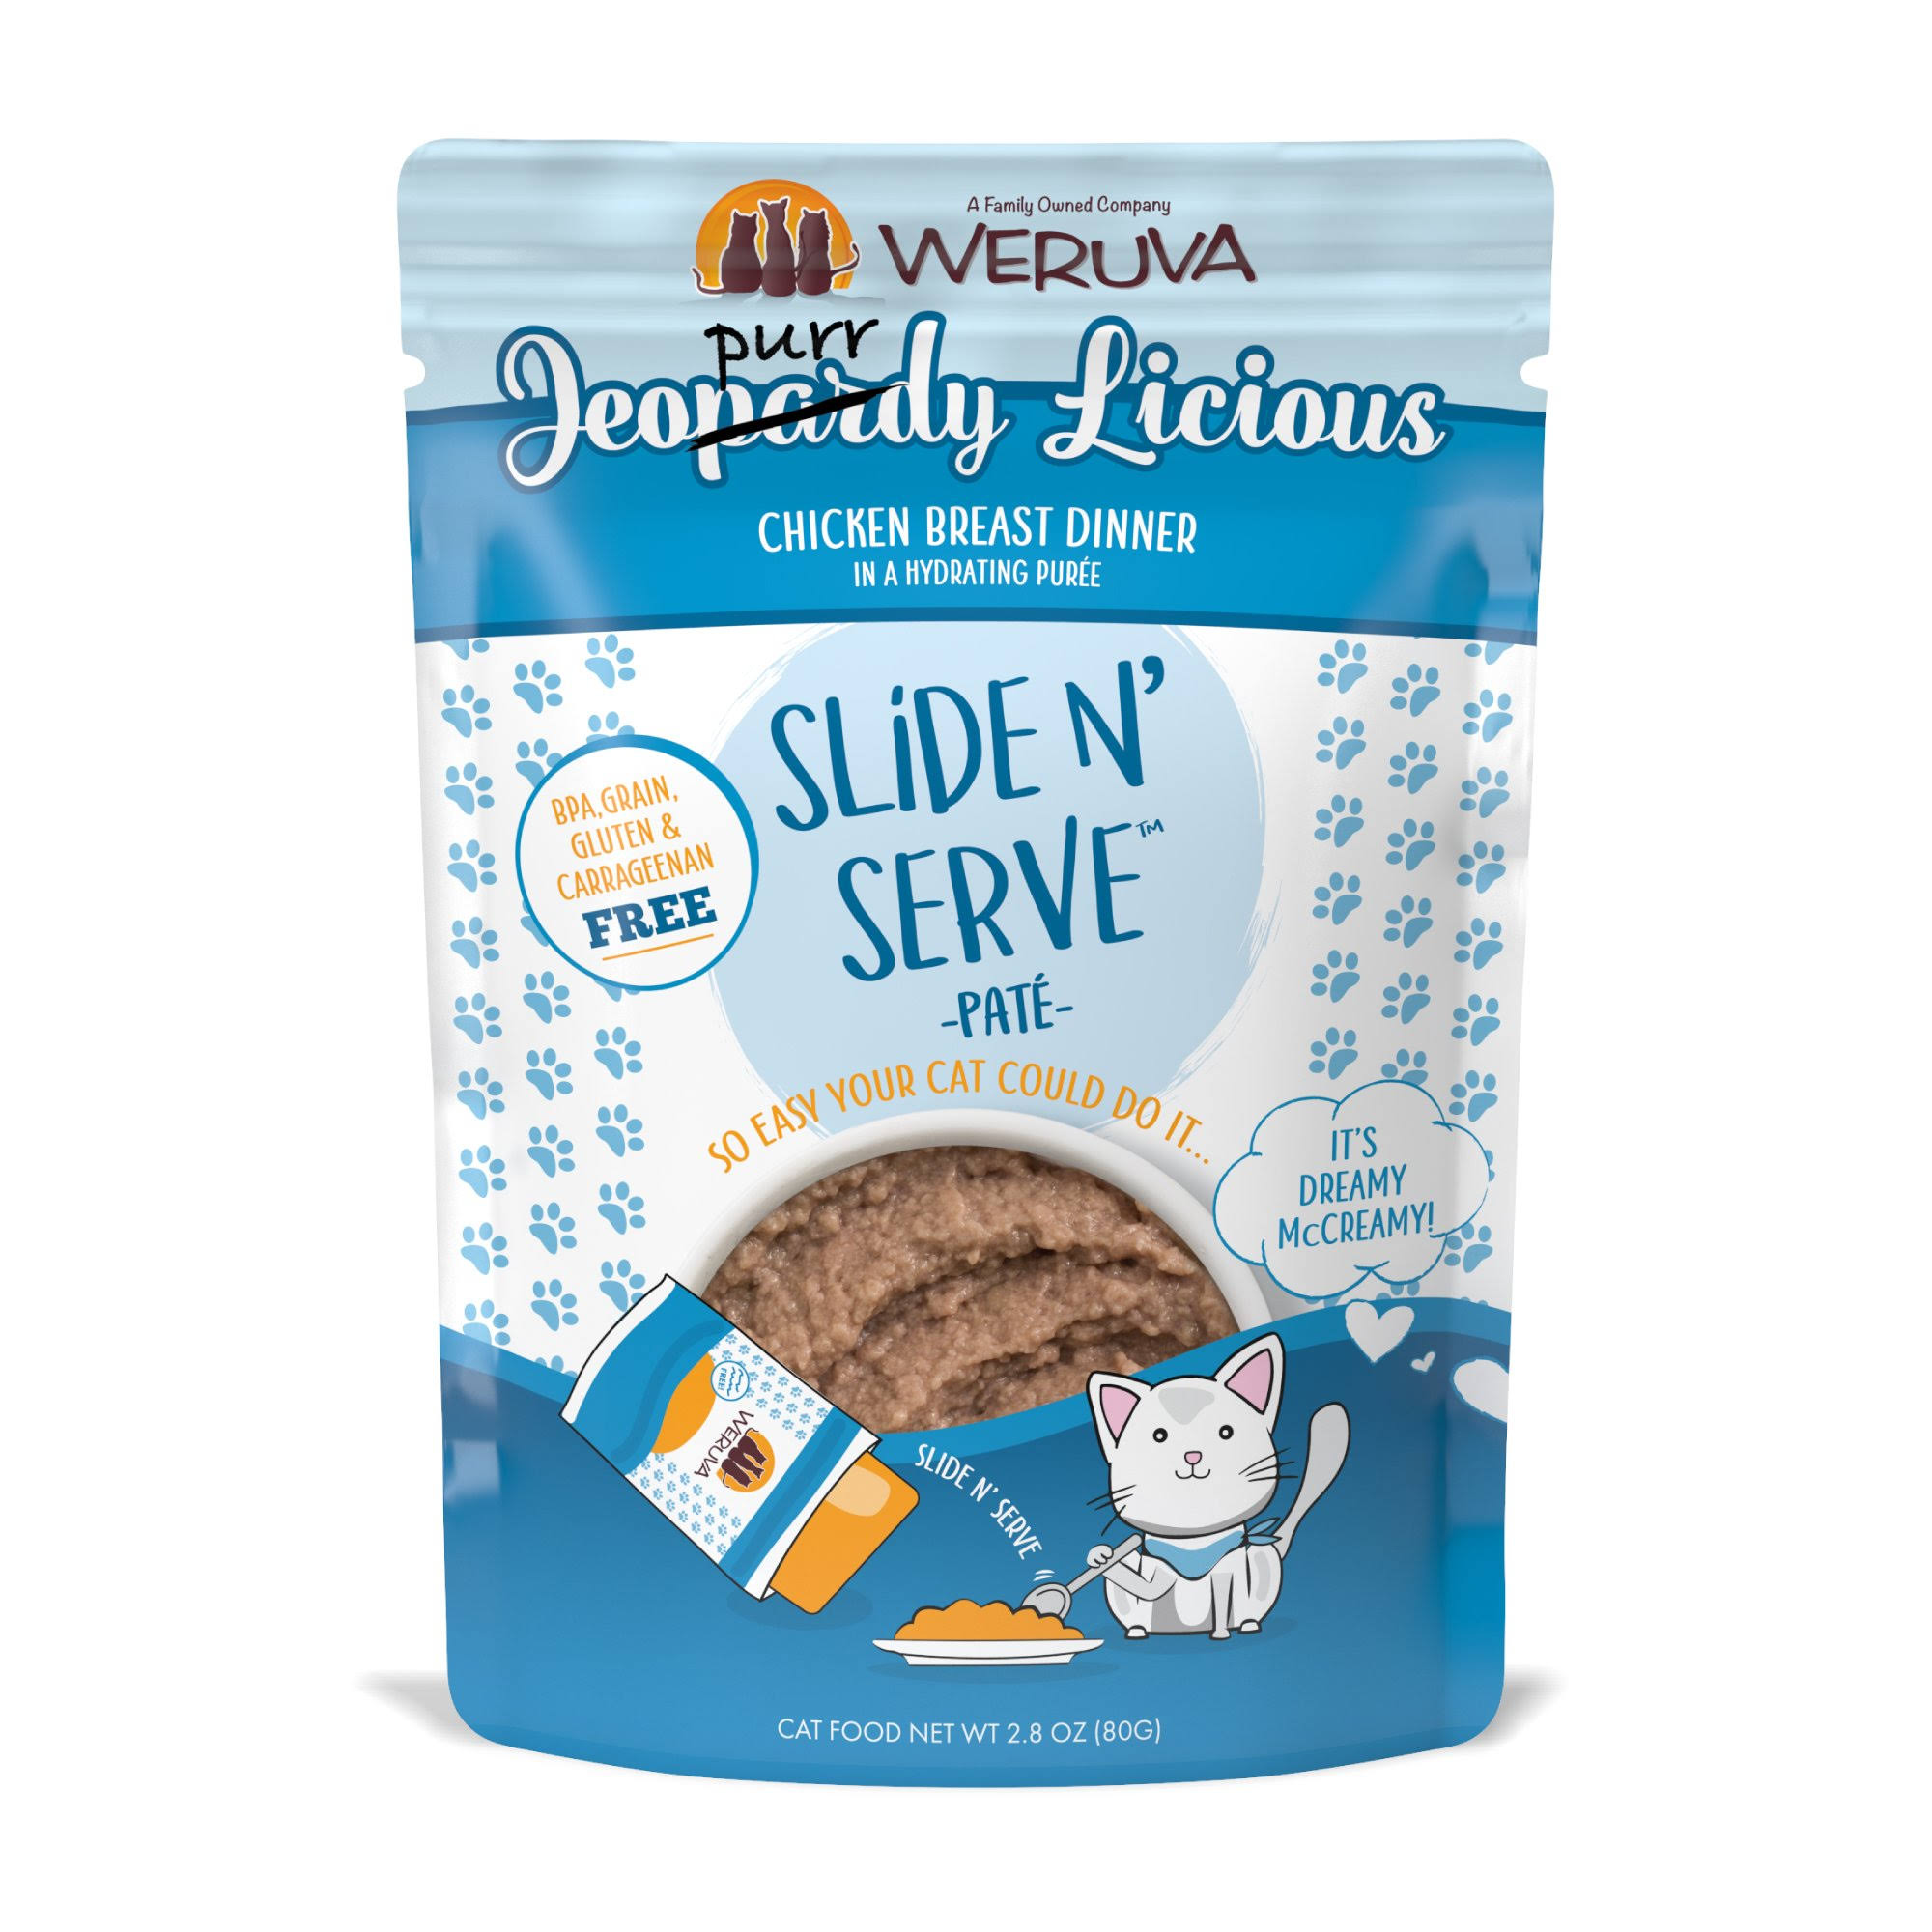 Weruva Slide N' Serve Grain Free Jeopurrdy Licious Chicken Dinner Wet Cat Food Pouch - 2.8 oz, Case of 12